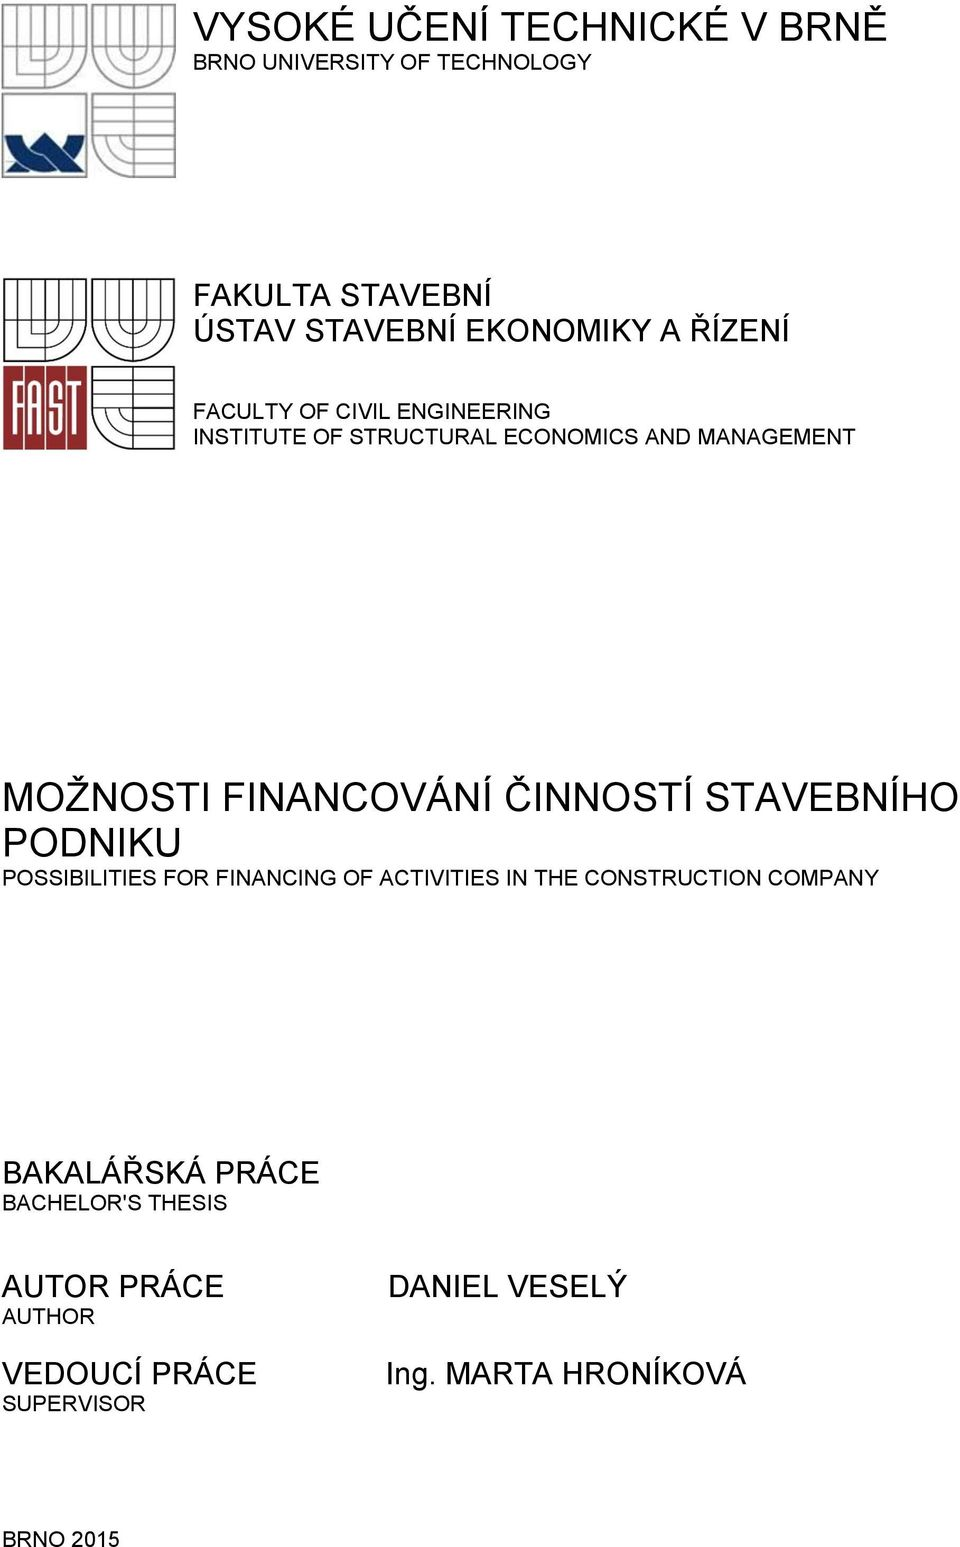 ČINNOSTÍ STAVEBNÍHO PODNIKU POSSIBILITIES FOR FINANCING OF ACTIVITIES IN THE CONSTRUCTION COMPANY